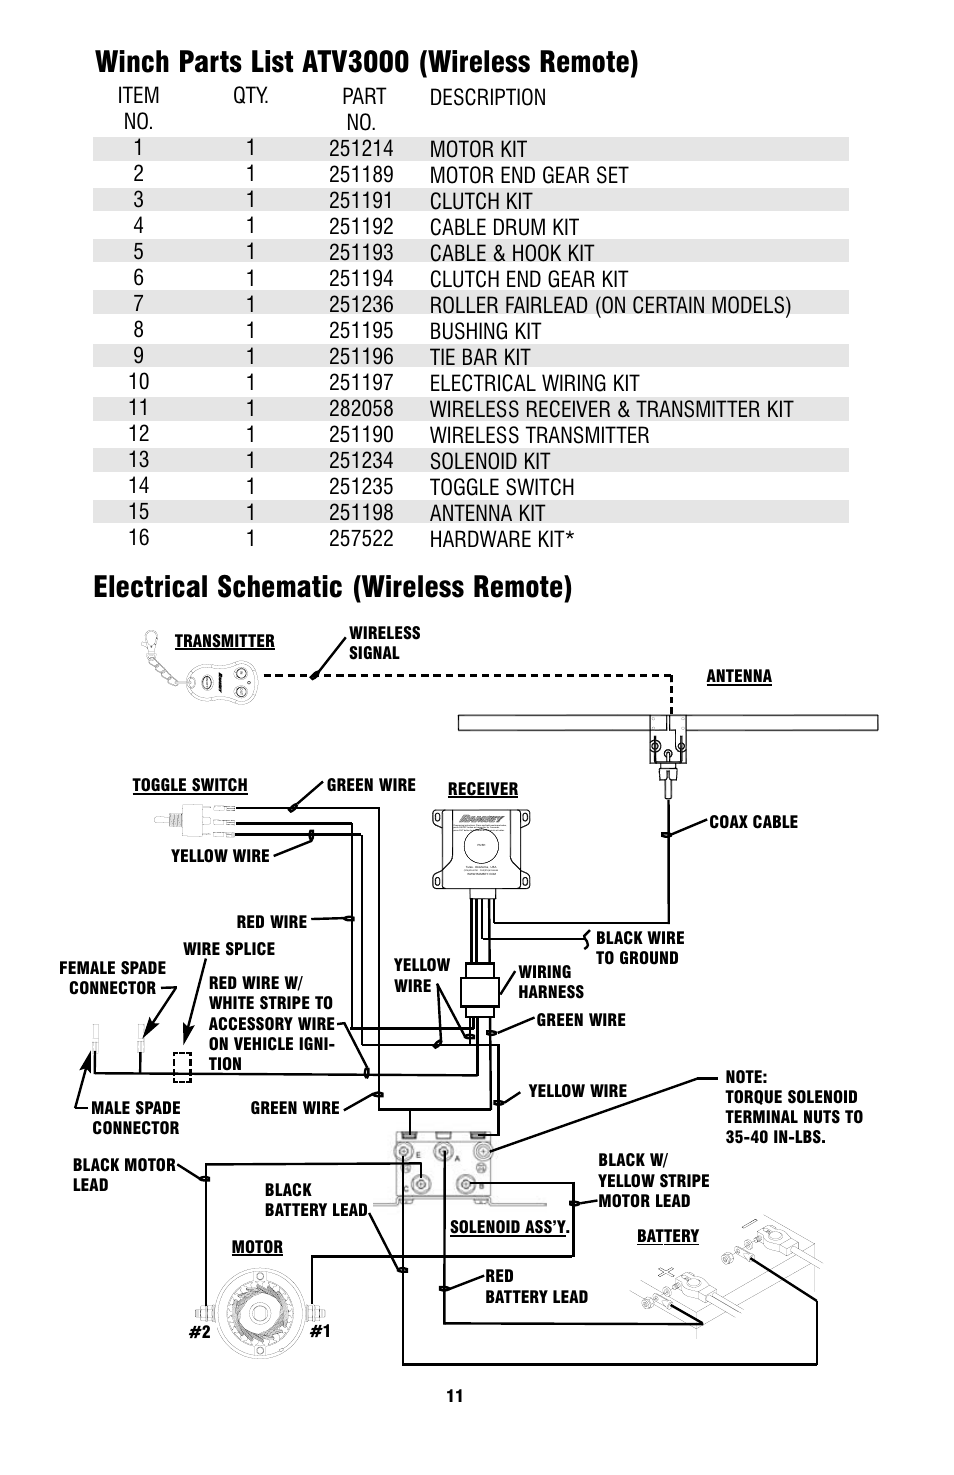 ramsey winch atv 3000 page11 ramsey winch atv 3000 user manual page 11 16 wiring diagram for a 8000 ramsey winch at honlapkeszites.co